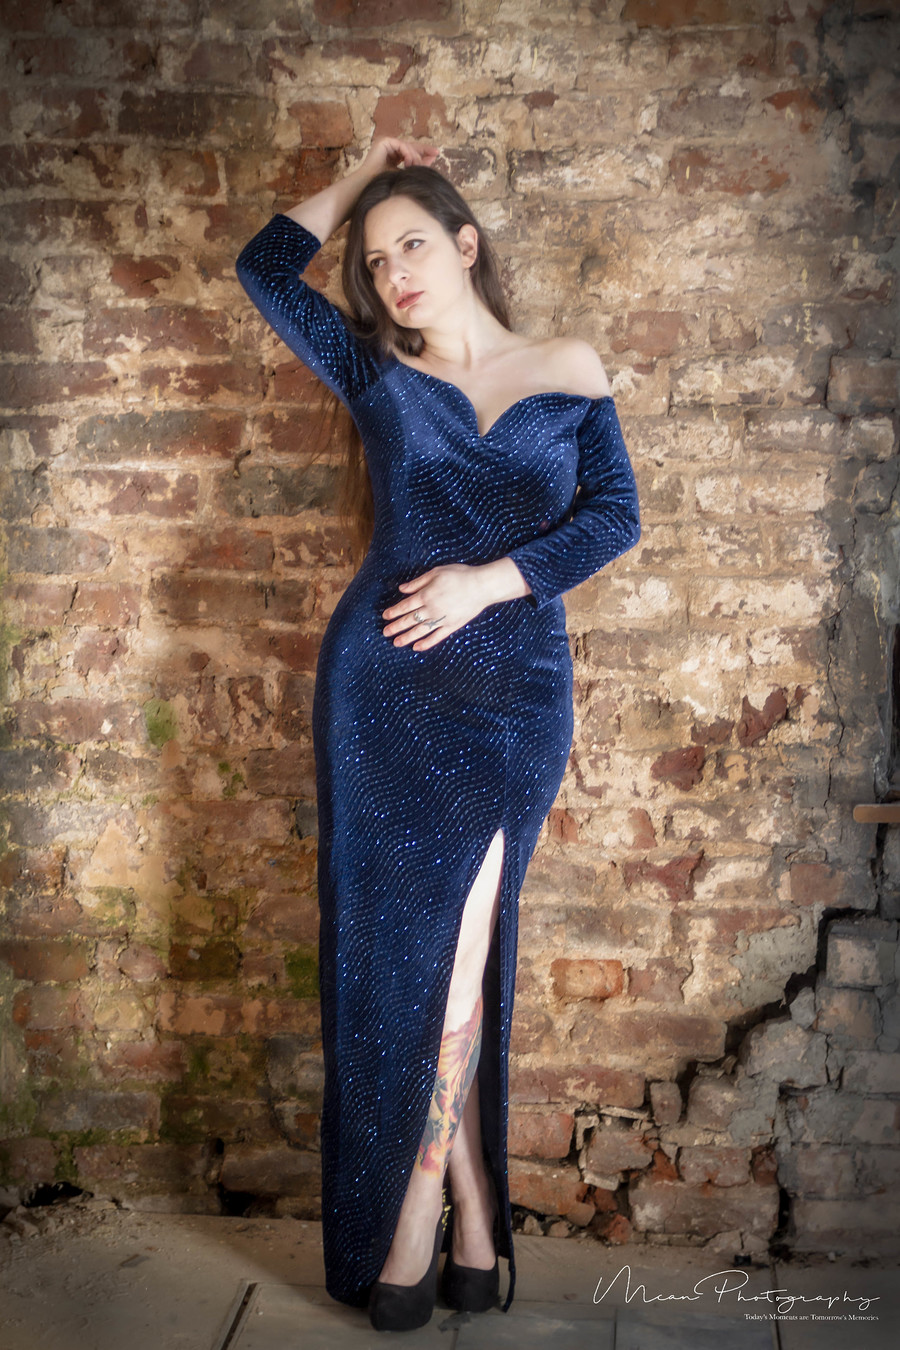 My Blue Dress / Photography by Mcan Photography Ltd (Ste) / Uploaded 27th March 2018 @ 10:42 AM